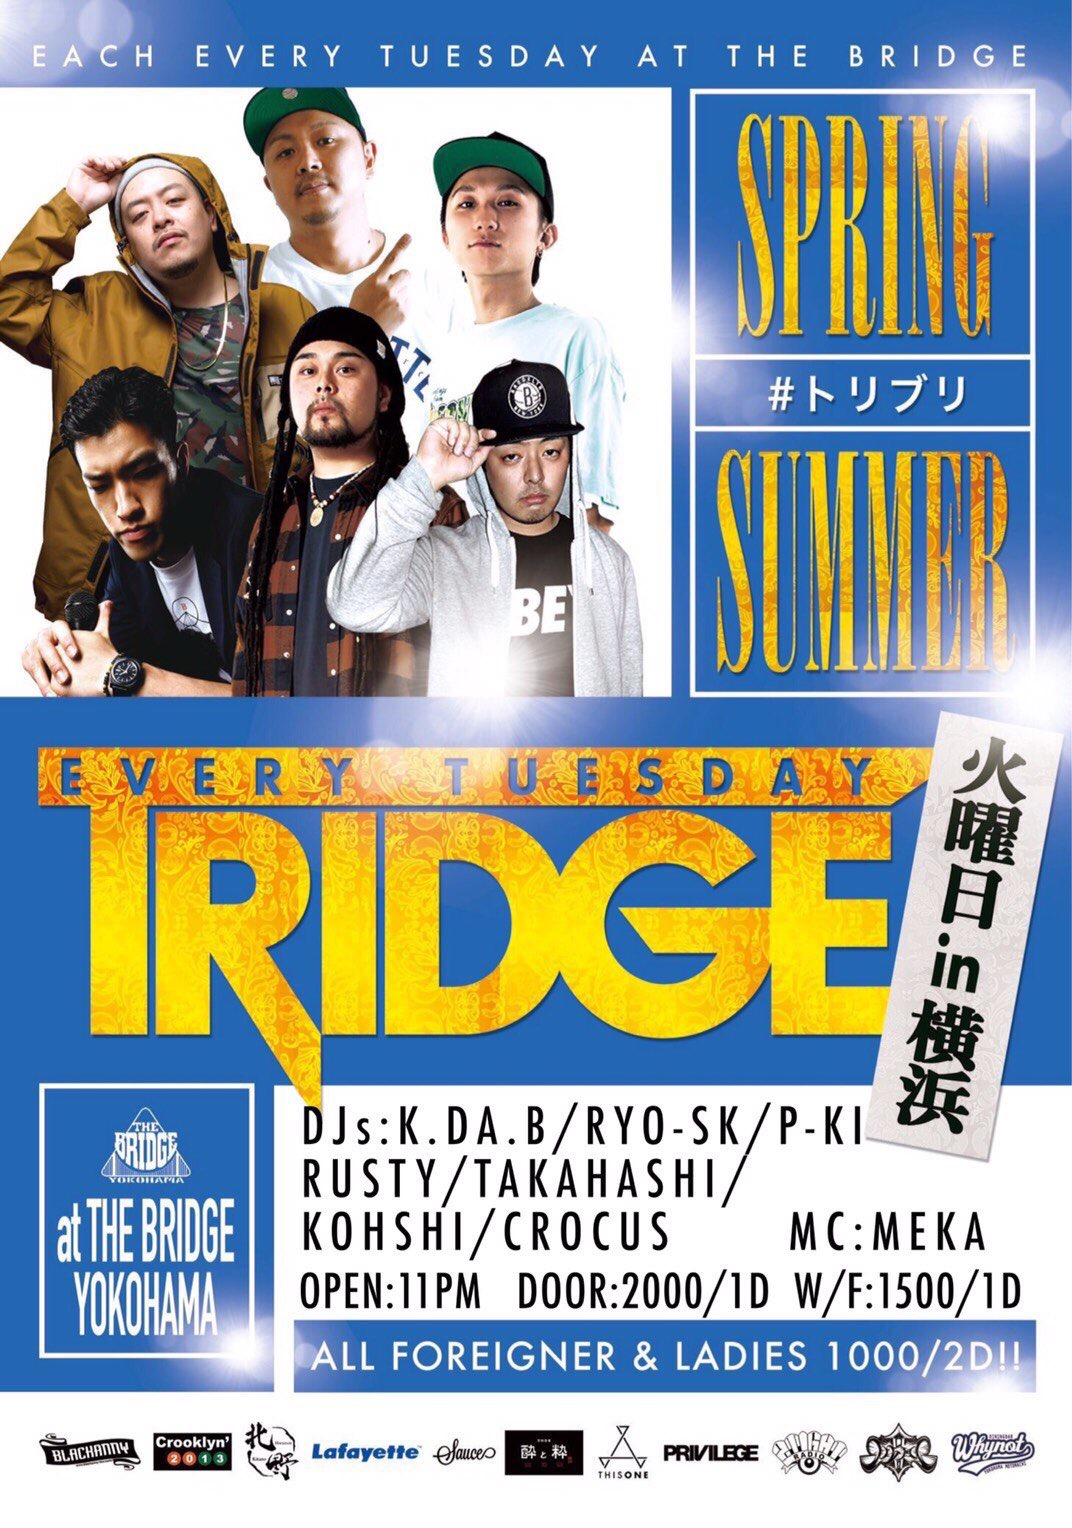 TRIDGE-bridgeyokohama